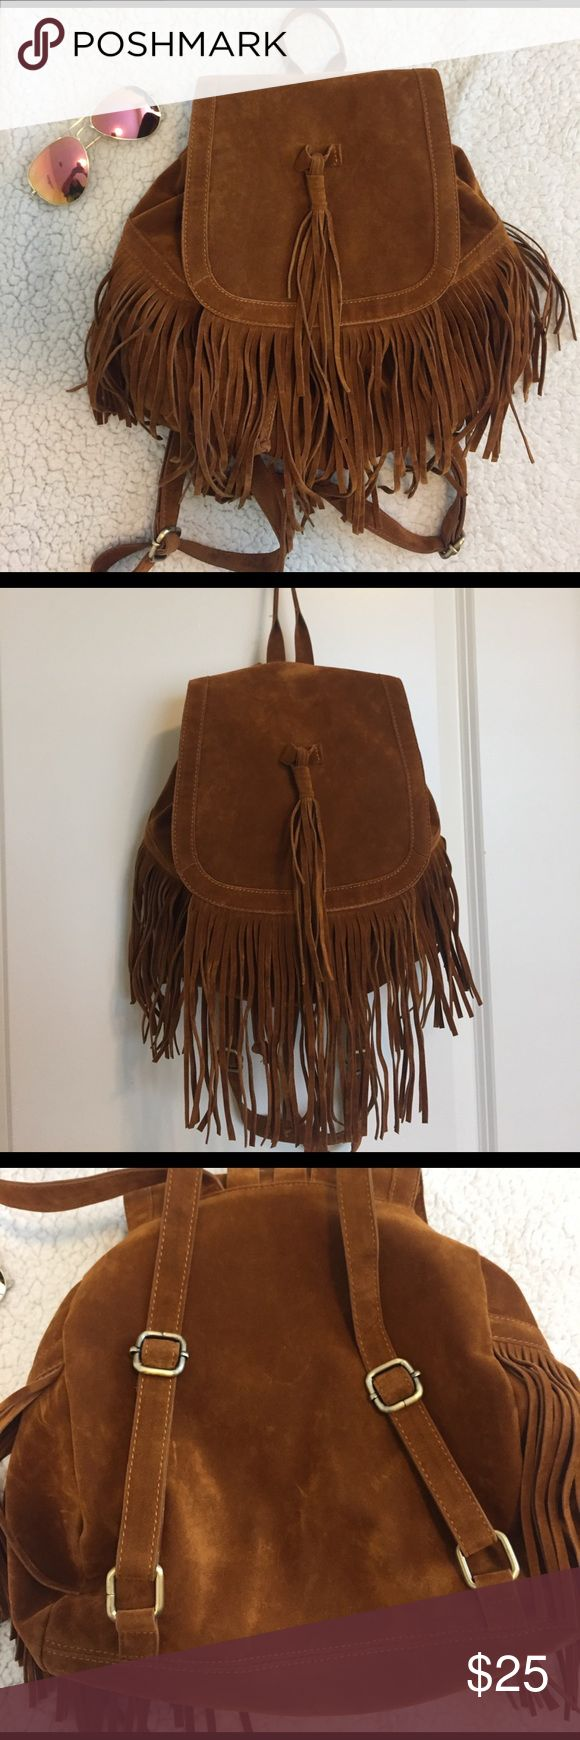 """🌺 Faux Suede Fringe Tassel Backpack Used a handful of times, adjustable straps, 2 pockets, drawstring enclosure with magnetic clasp to secure, small scuffs as shown in last picture. I would say the color is brown with more of an orange-ish tint. Dimensions are approx. 11"""" x 4.5"""" x 13"""". Would not fit a lap top or binders. This is a small bag, but it is perfect for festivals, daily essentials, spring break on the beach, or even a day at DisneyWorld!  Excellent condition. Sad to see this go :(…"""